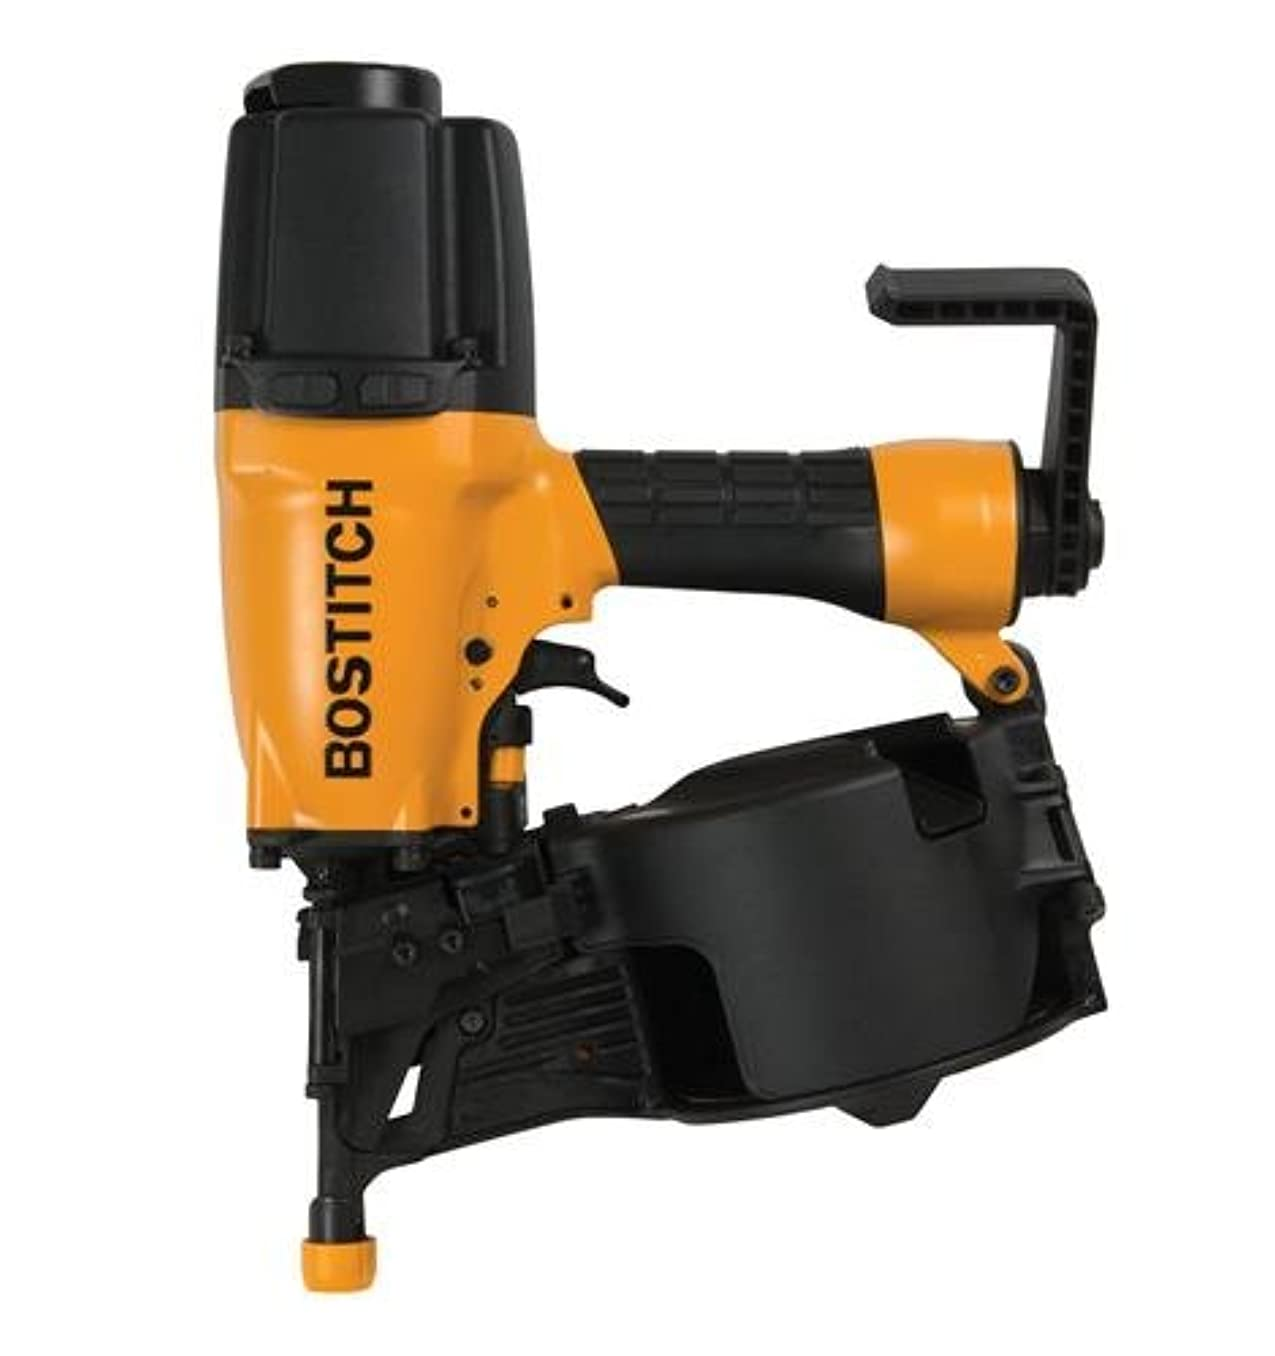 BOSTITCH U/N75C-1 Coil Sheathing/Siding Nailer